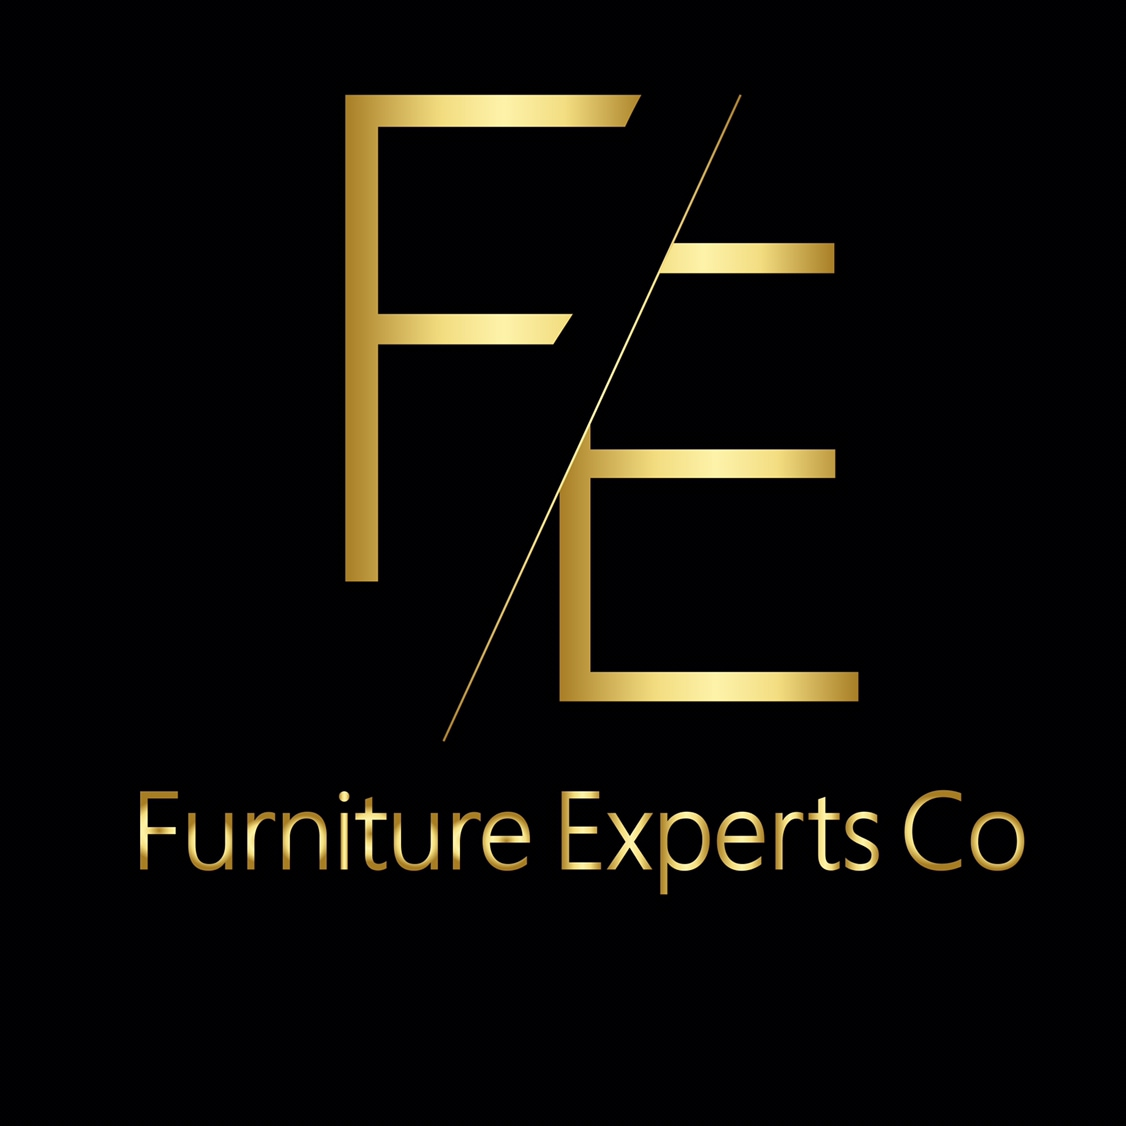 Furniture Experts Co.